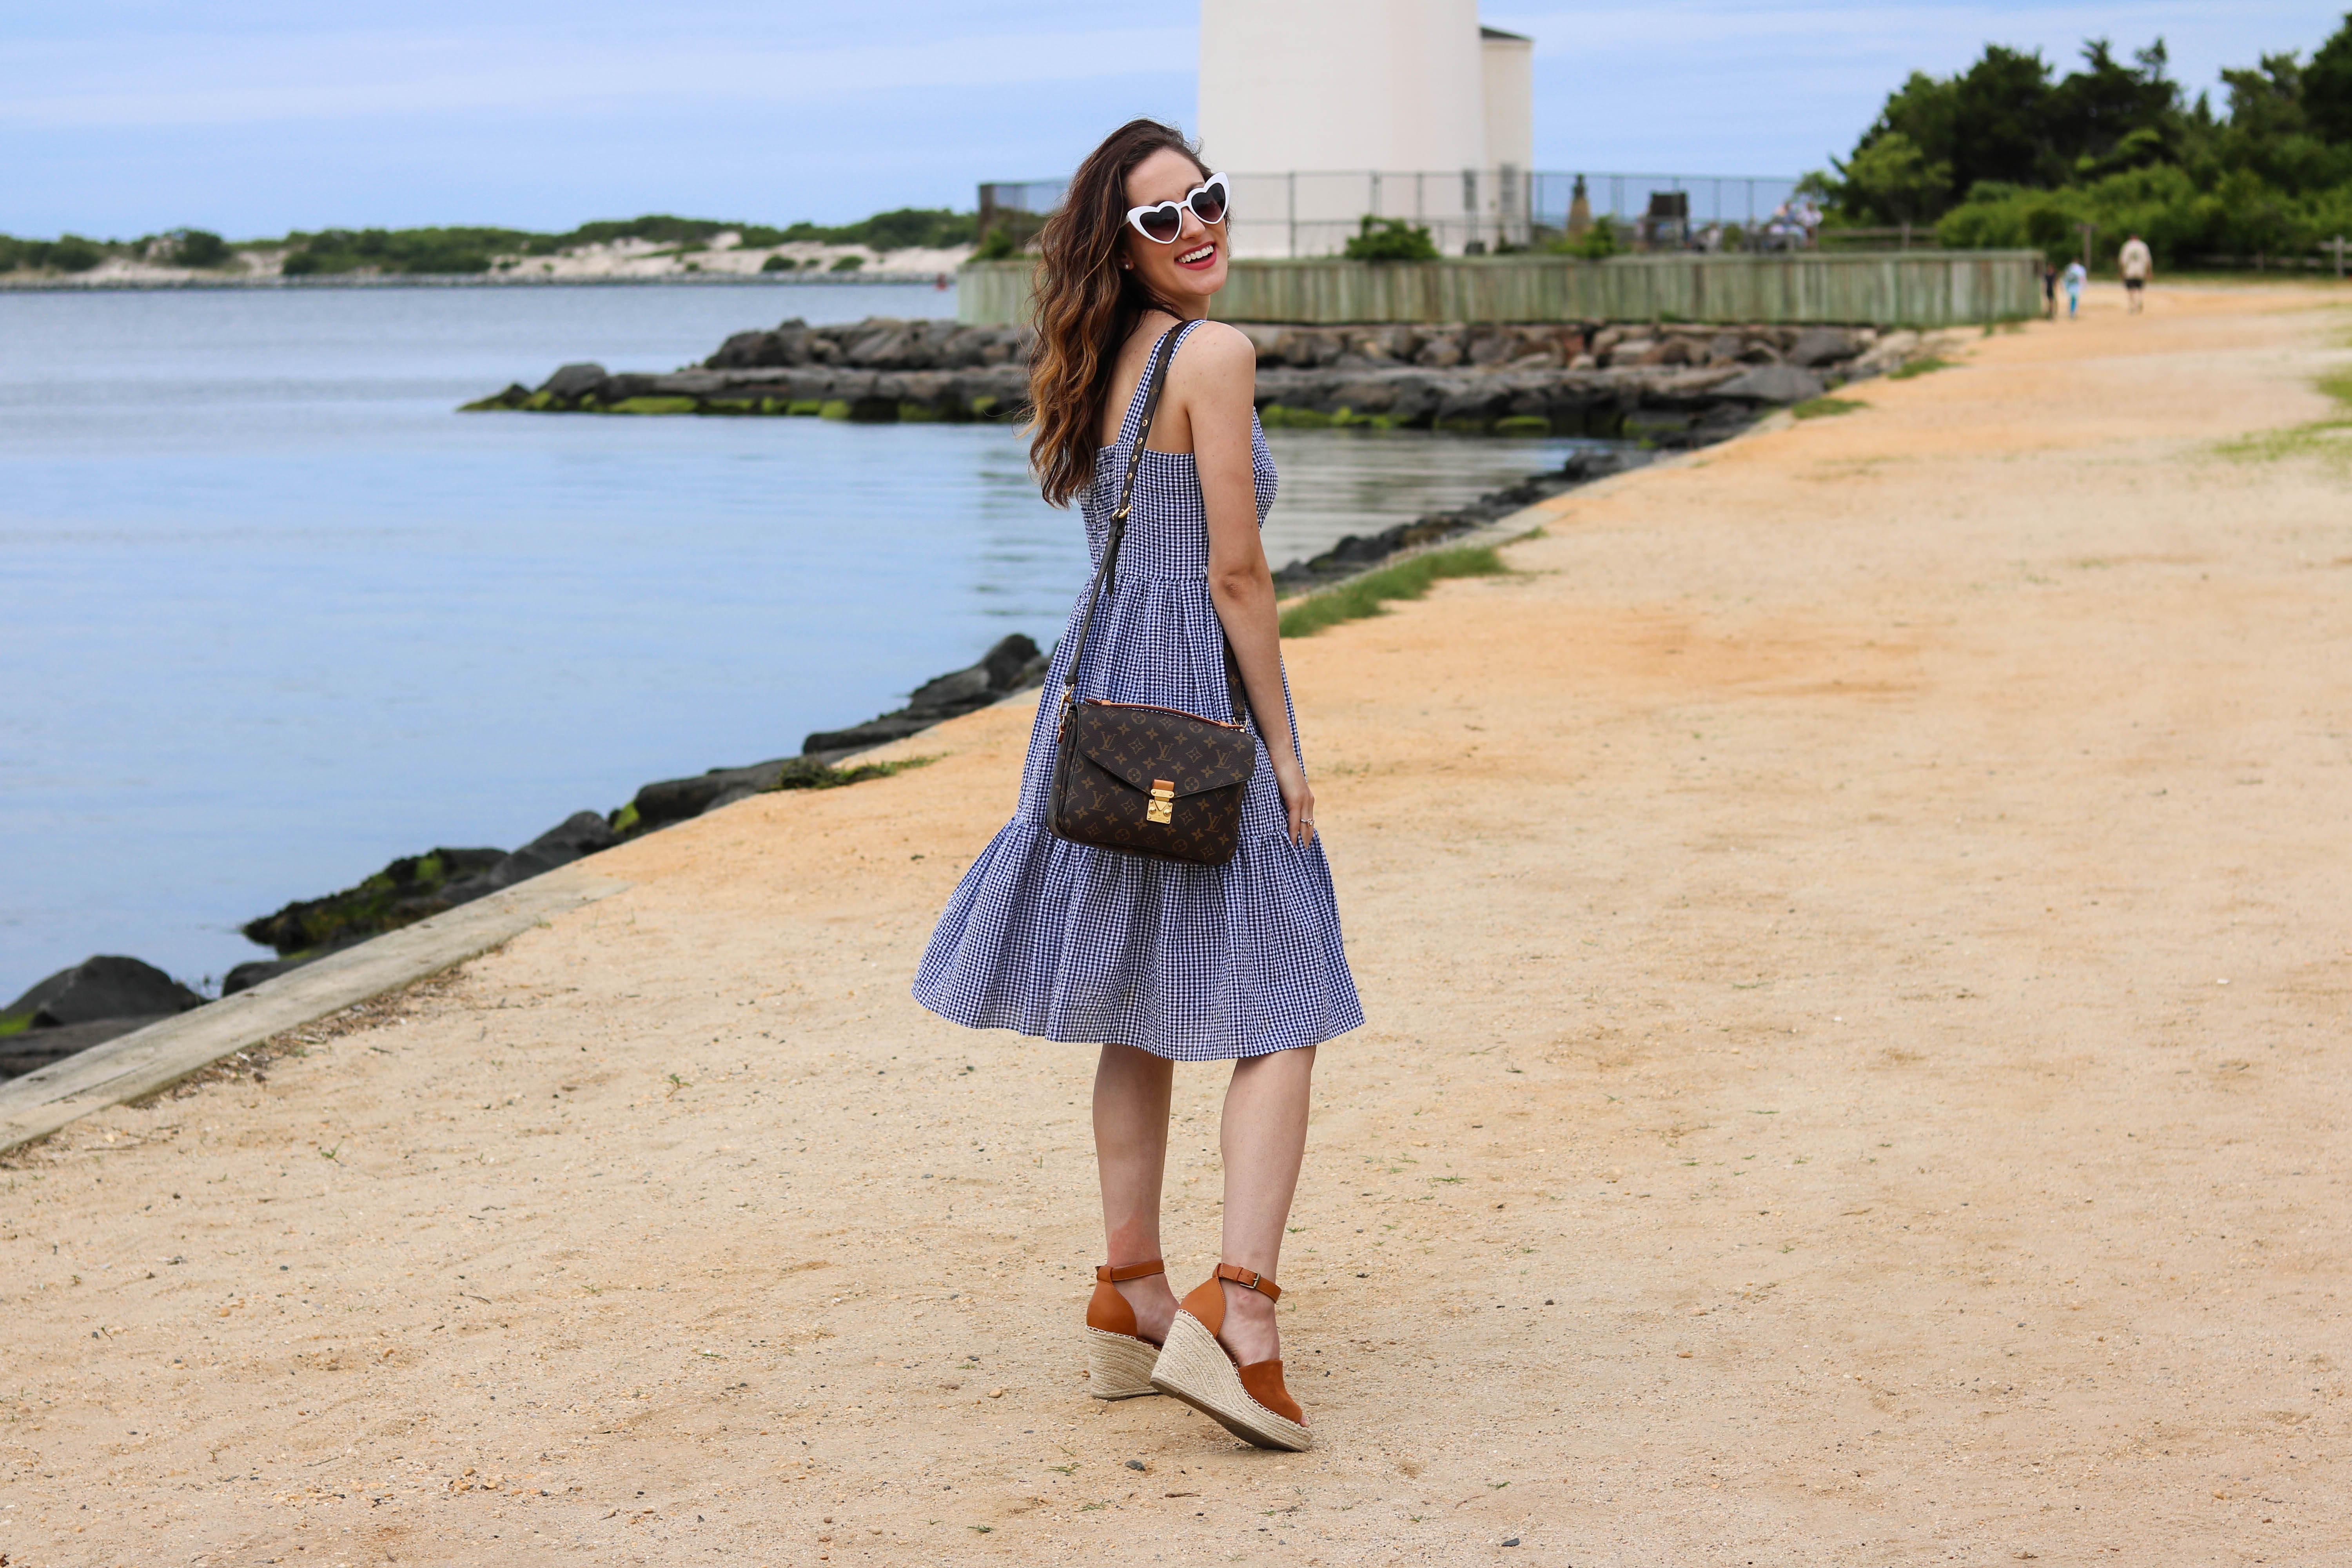 5 Things I'm Loveloveloving Right Now... - Labor Day Weekend Recap on Coming Up Roses